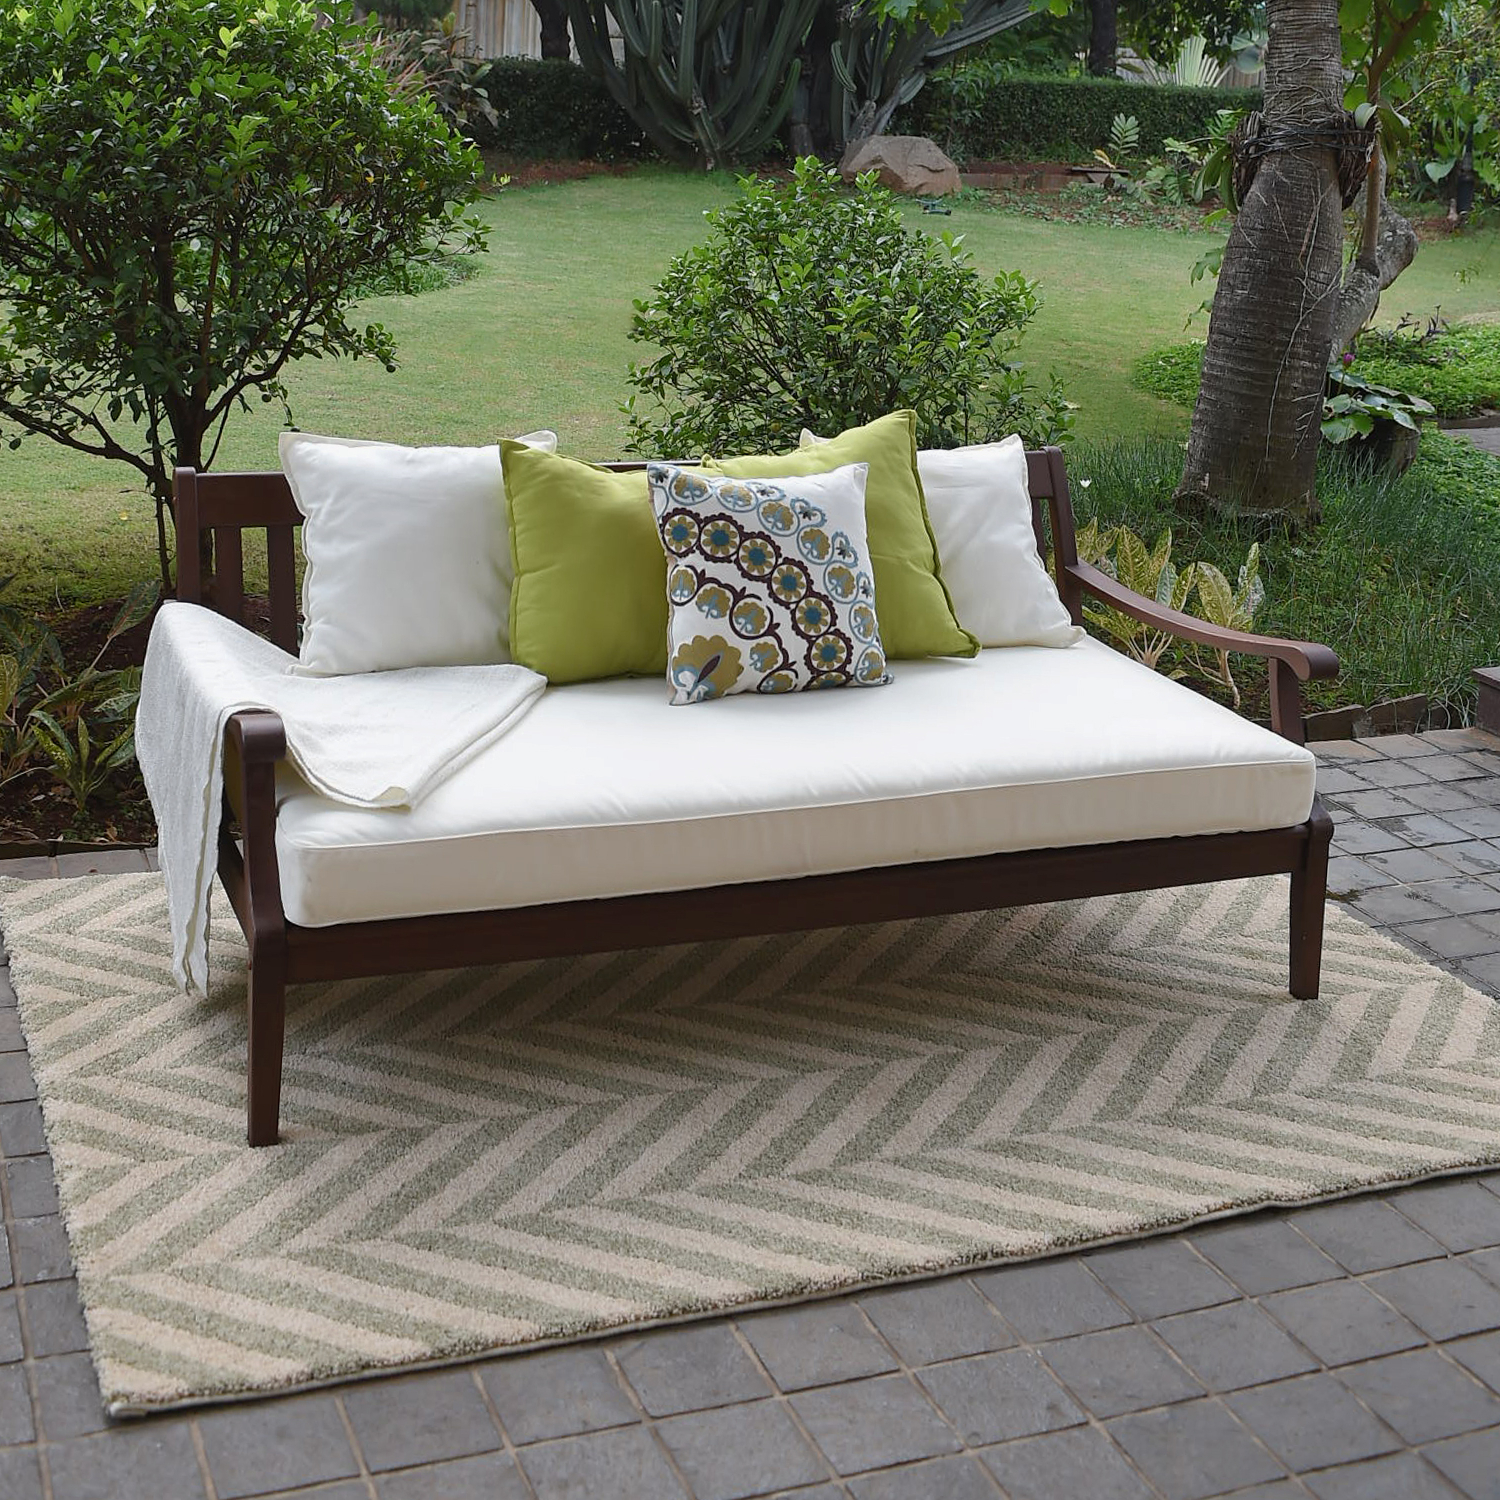 Aubrie Patio Daybeds With Cushions Intended For Popular Alston Wood Outdoor Sofa Daybed With White Cushion (View 24 of 25)